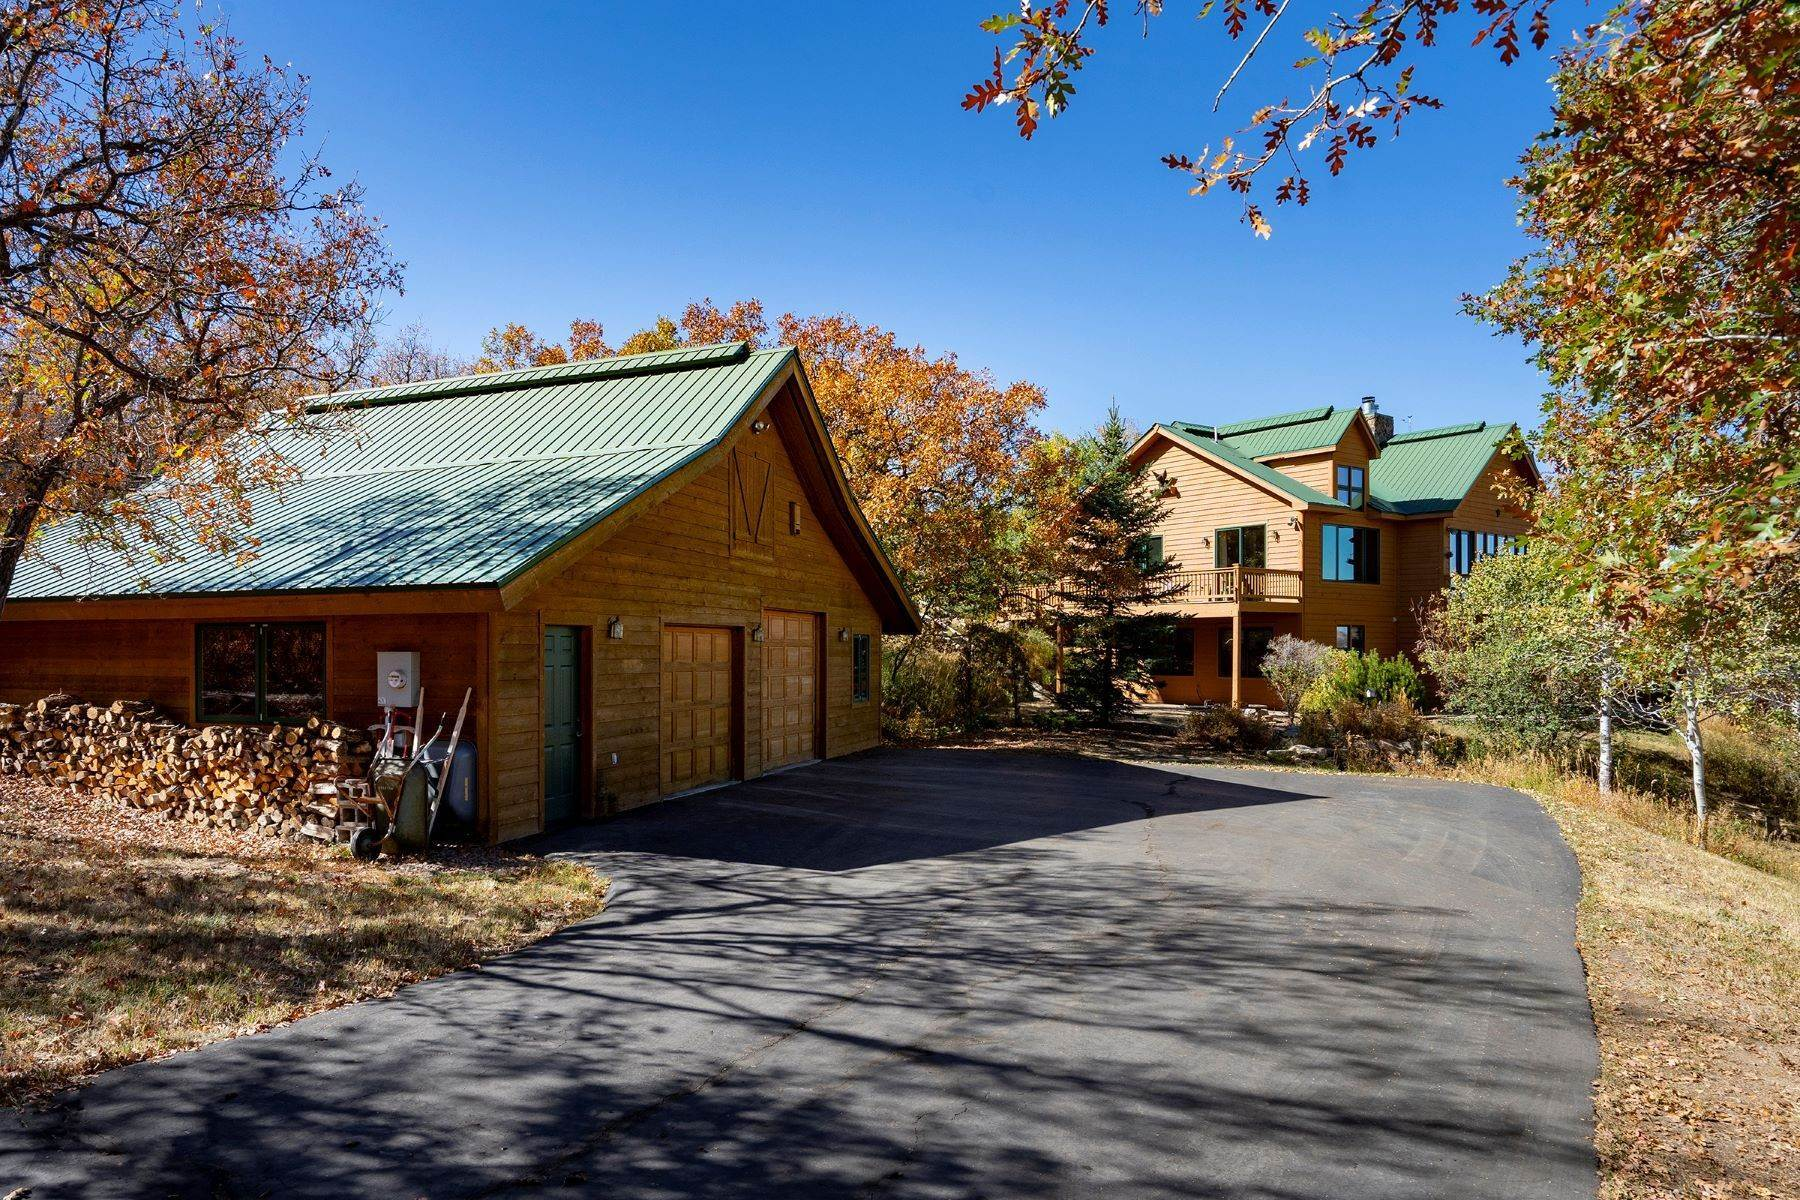 Single Family Homes for Sale at Blacktail Mountain Estates Home 28675 Yellow Jacket Drive Oak Creek, Colorado 80467 United States